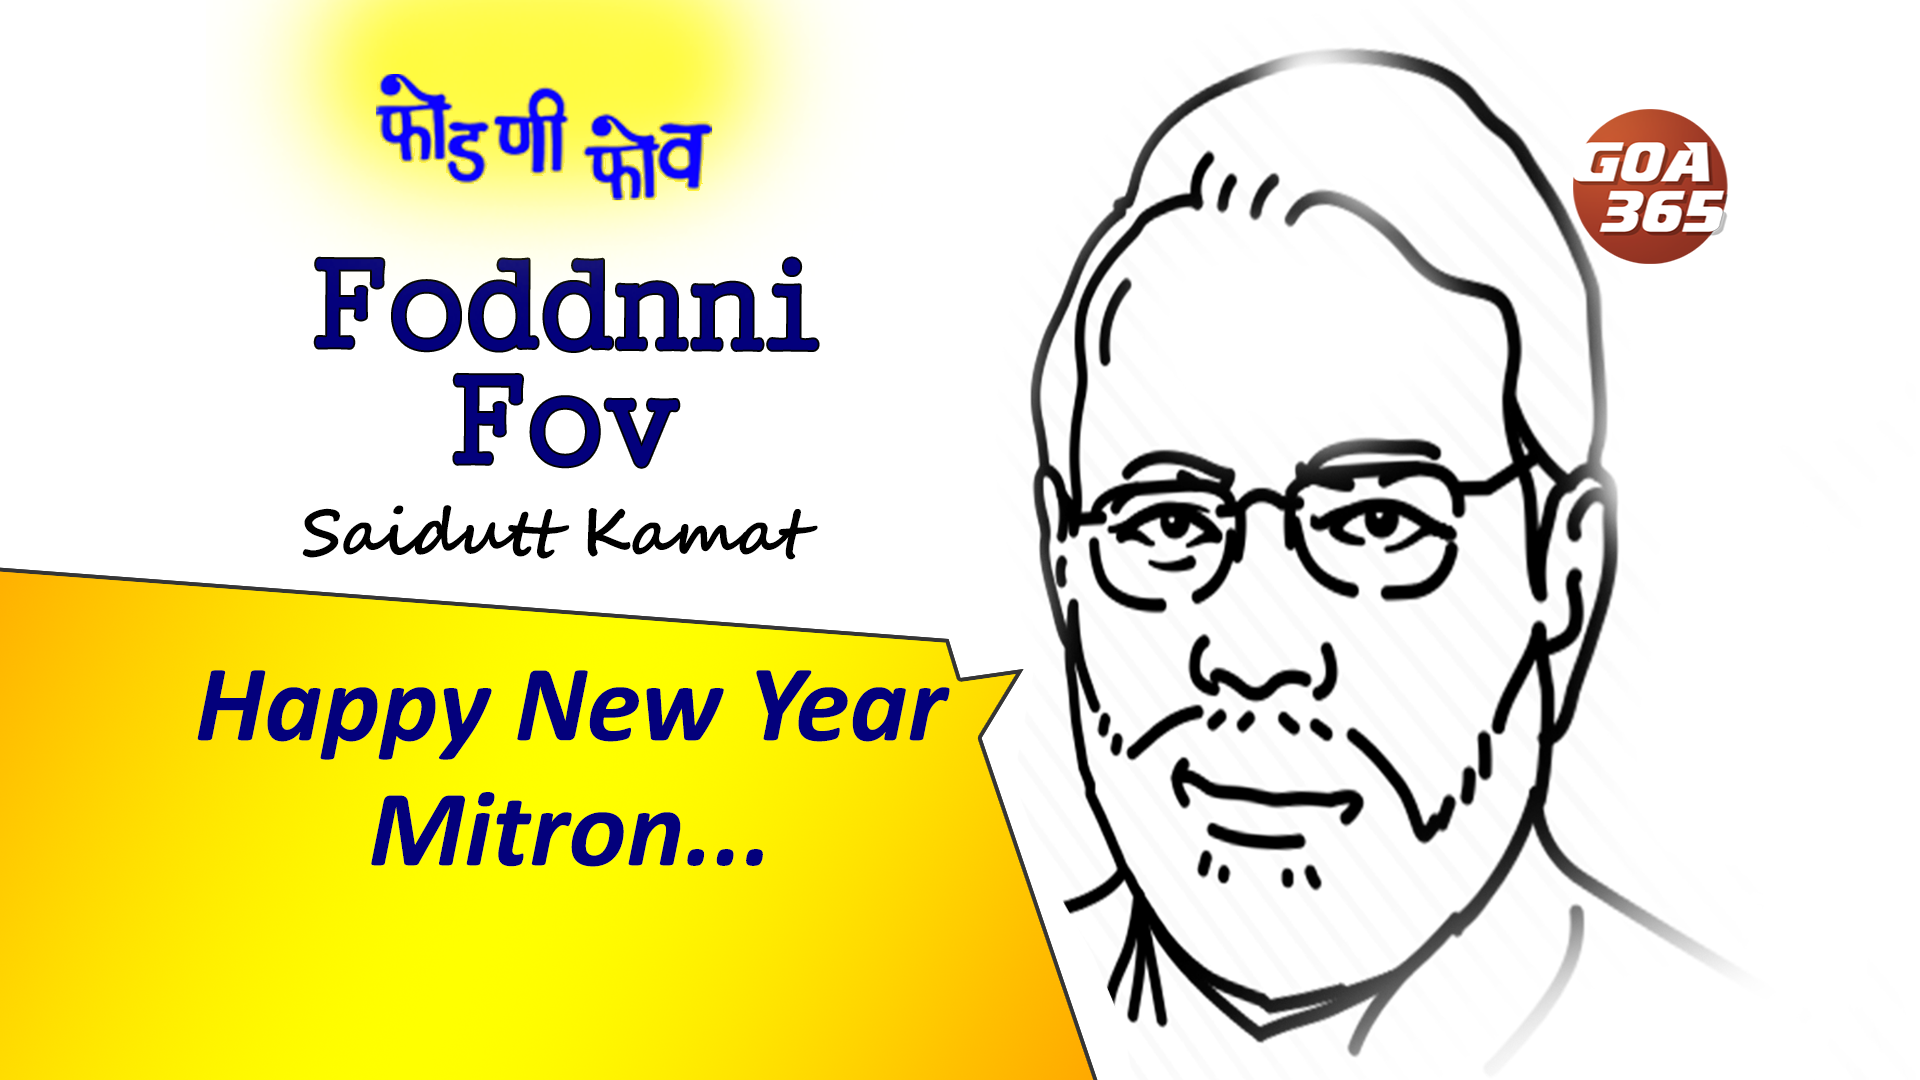 FODDNNI FOV : Happy New Year Mitron